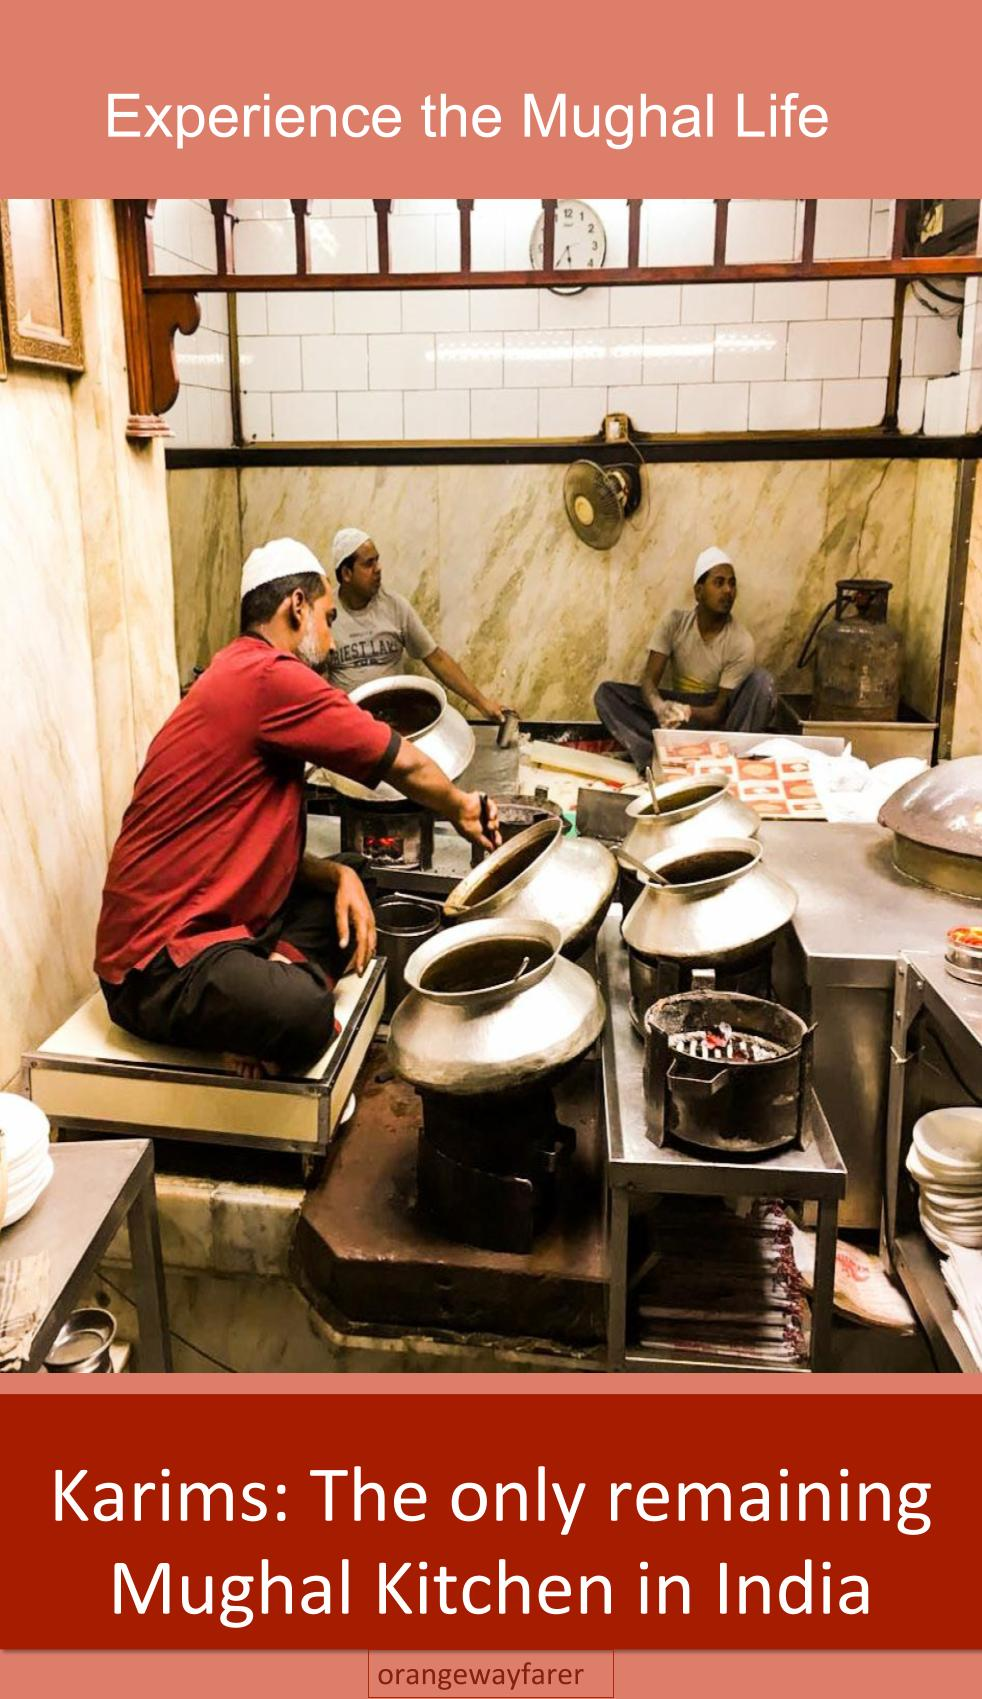 The last bastion of real Mughal cuisine